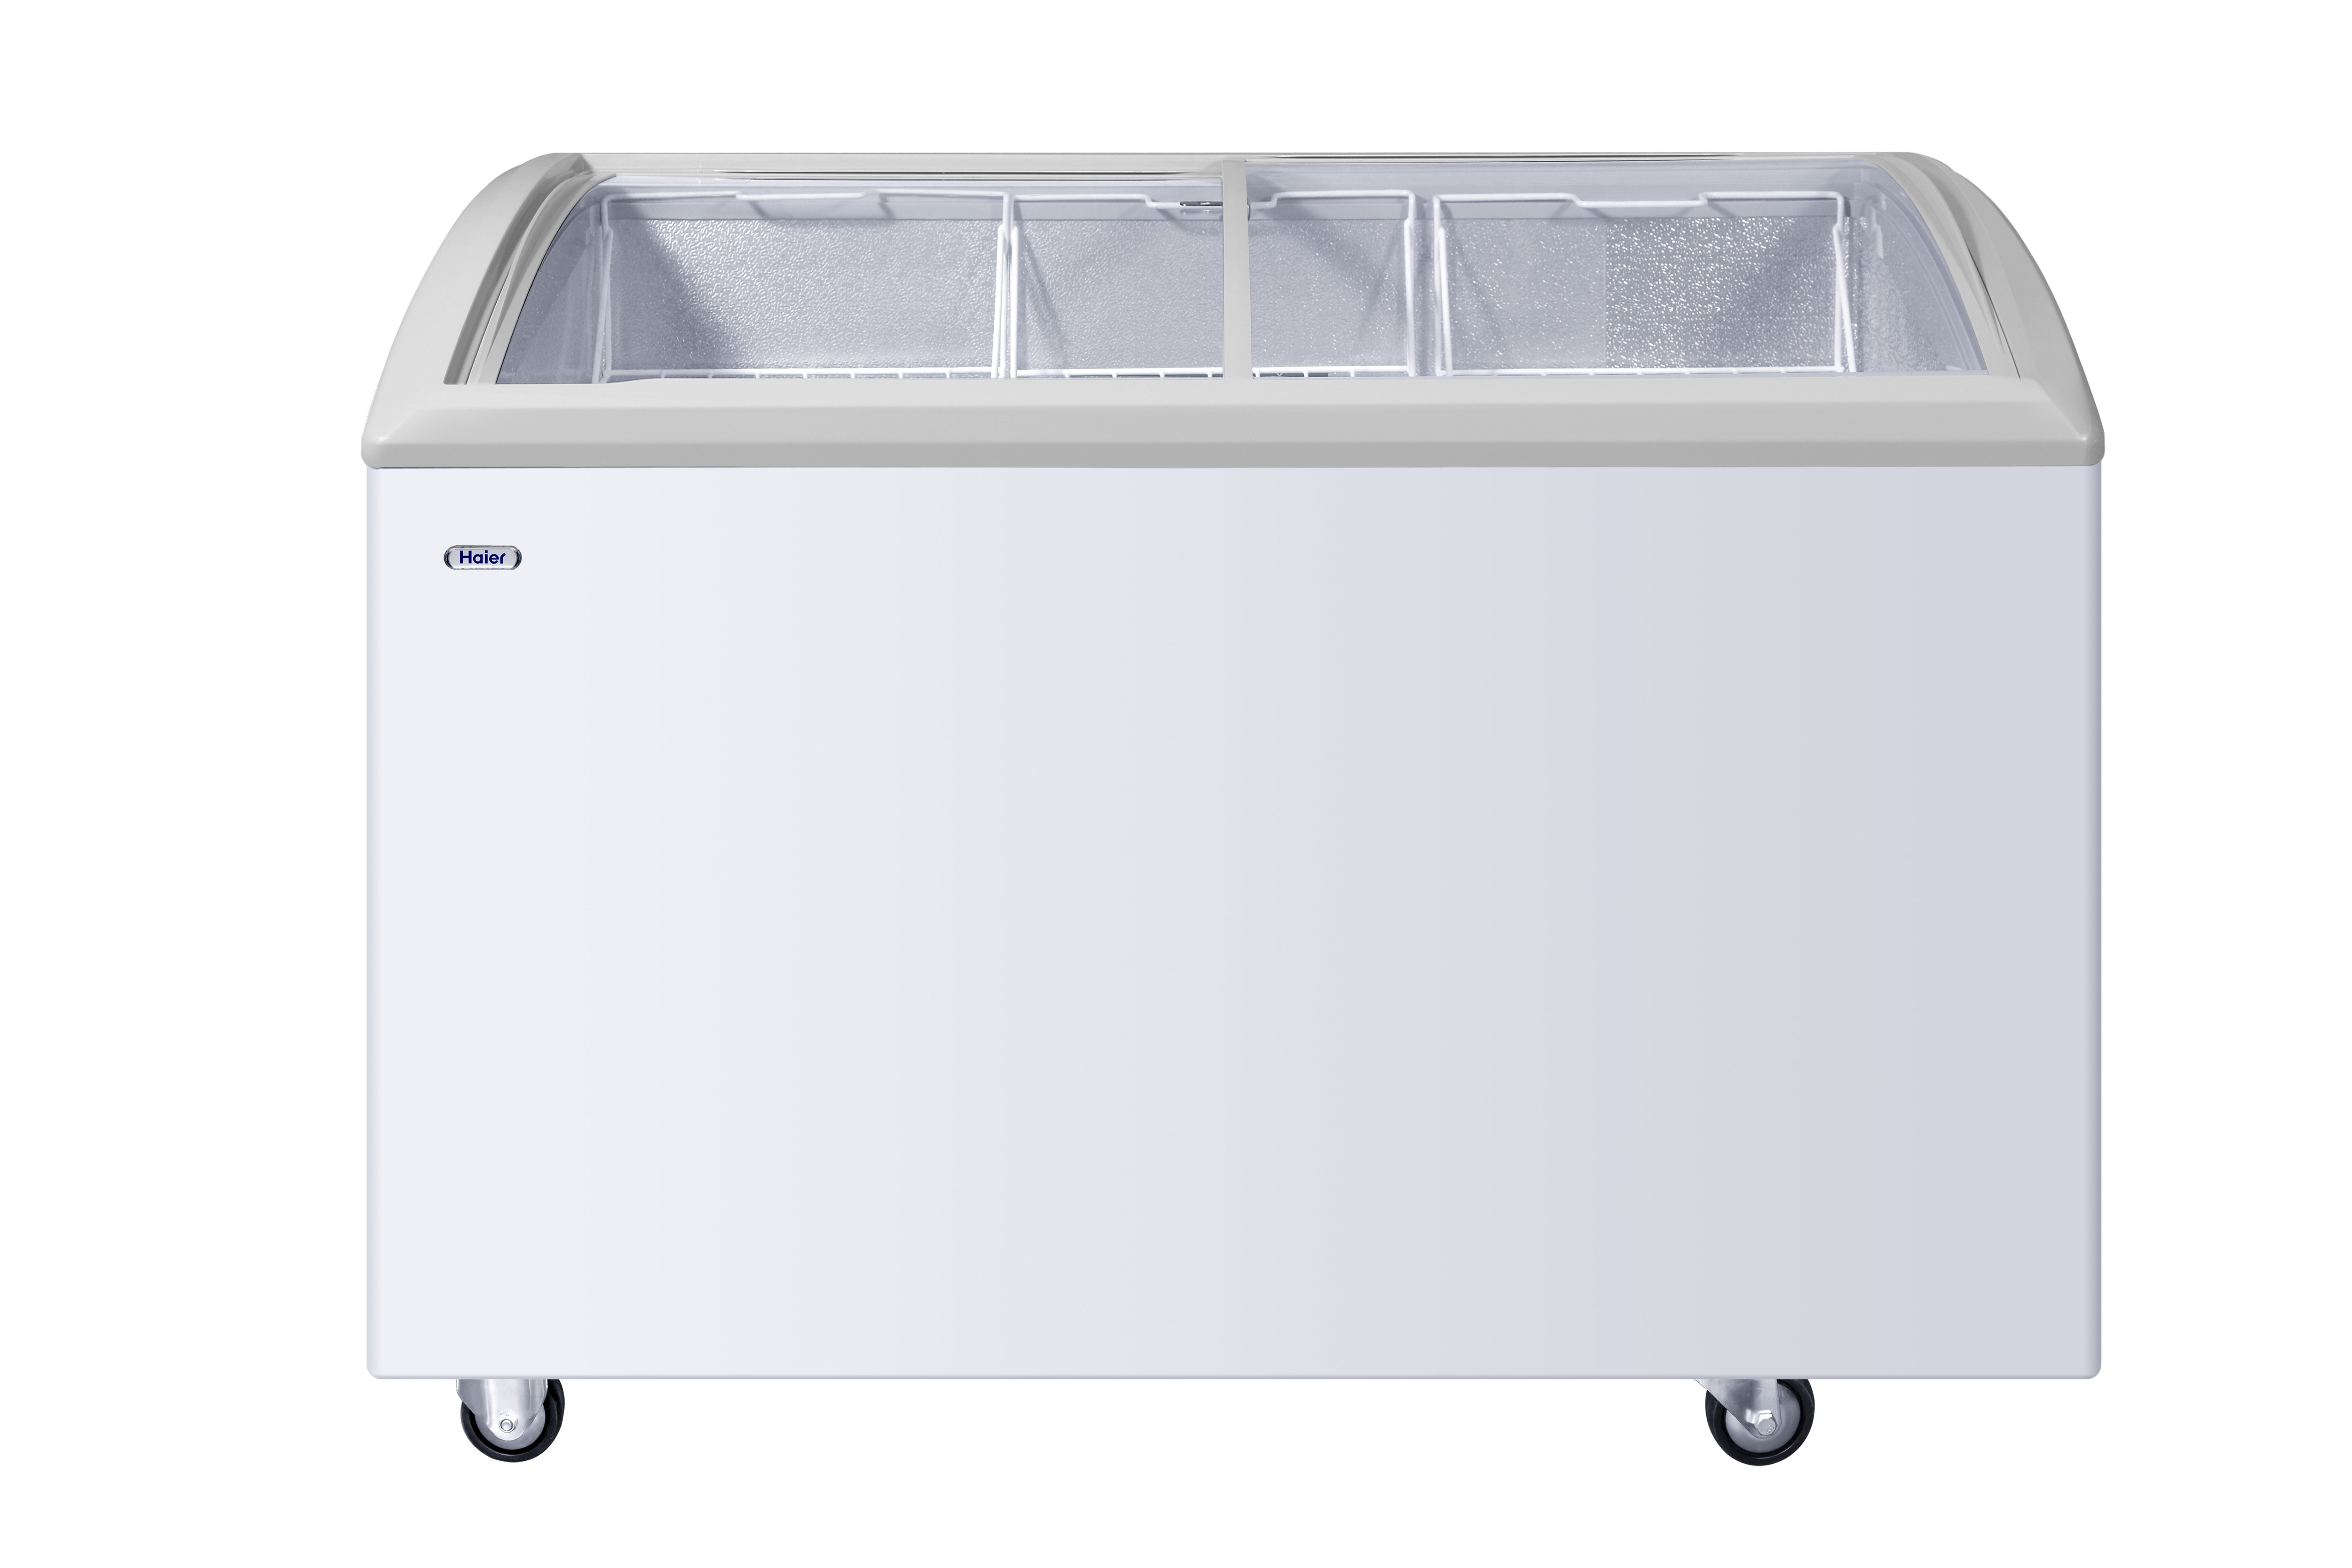 Haier 300 Ltrs Curved Glass Top Deep Freezer, HCF-300GHC